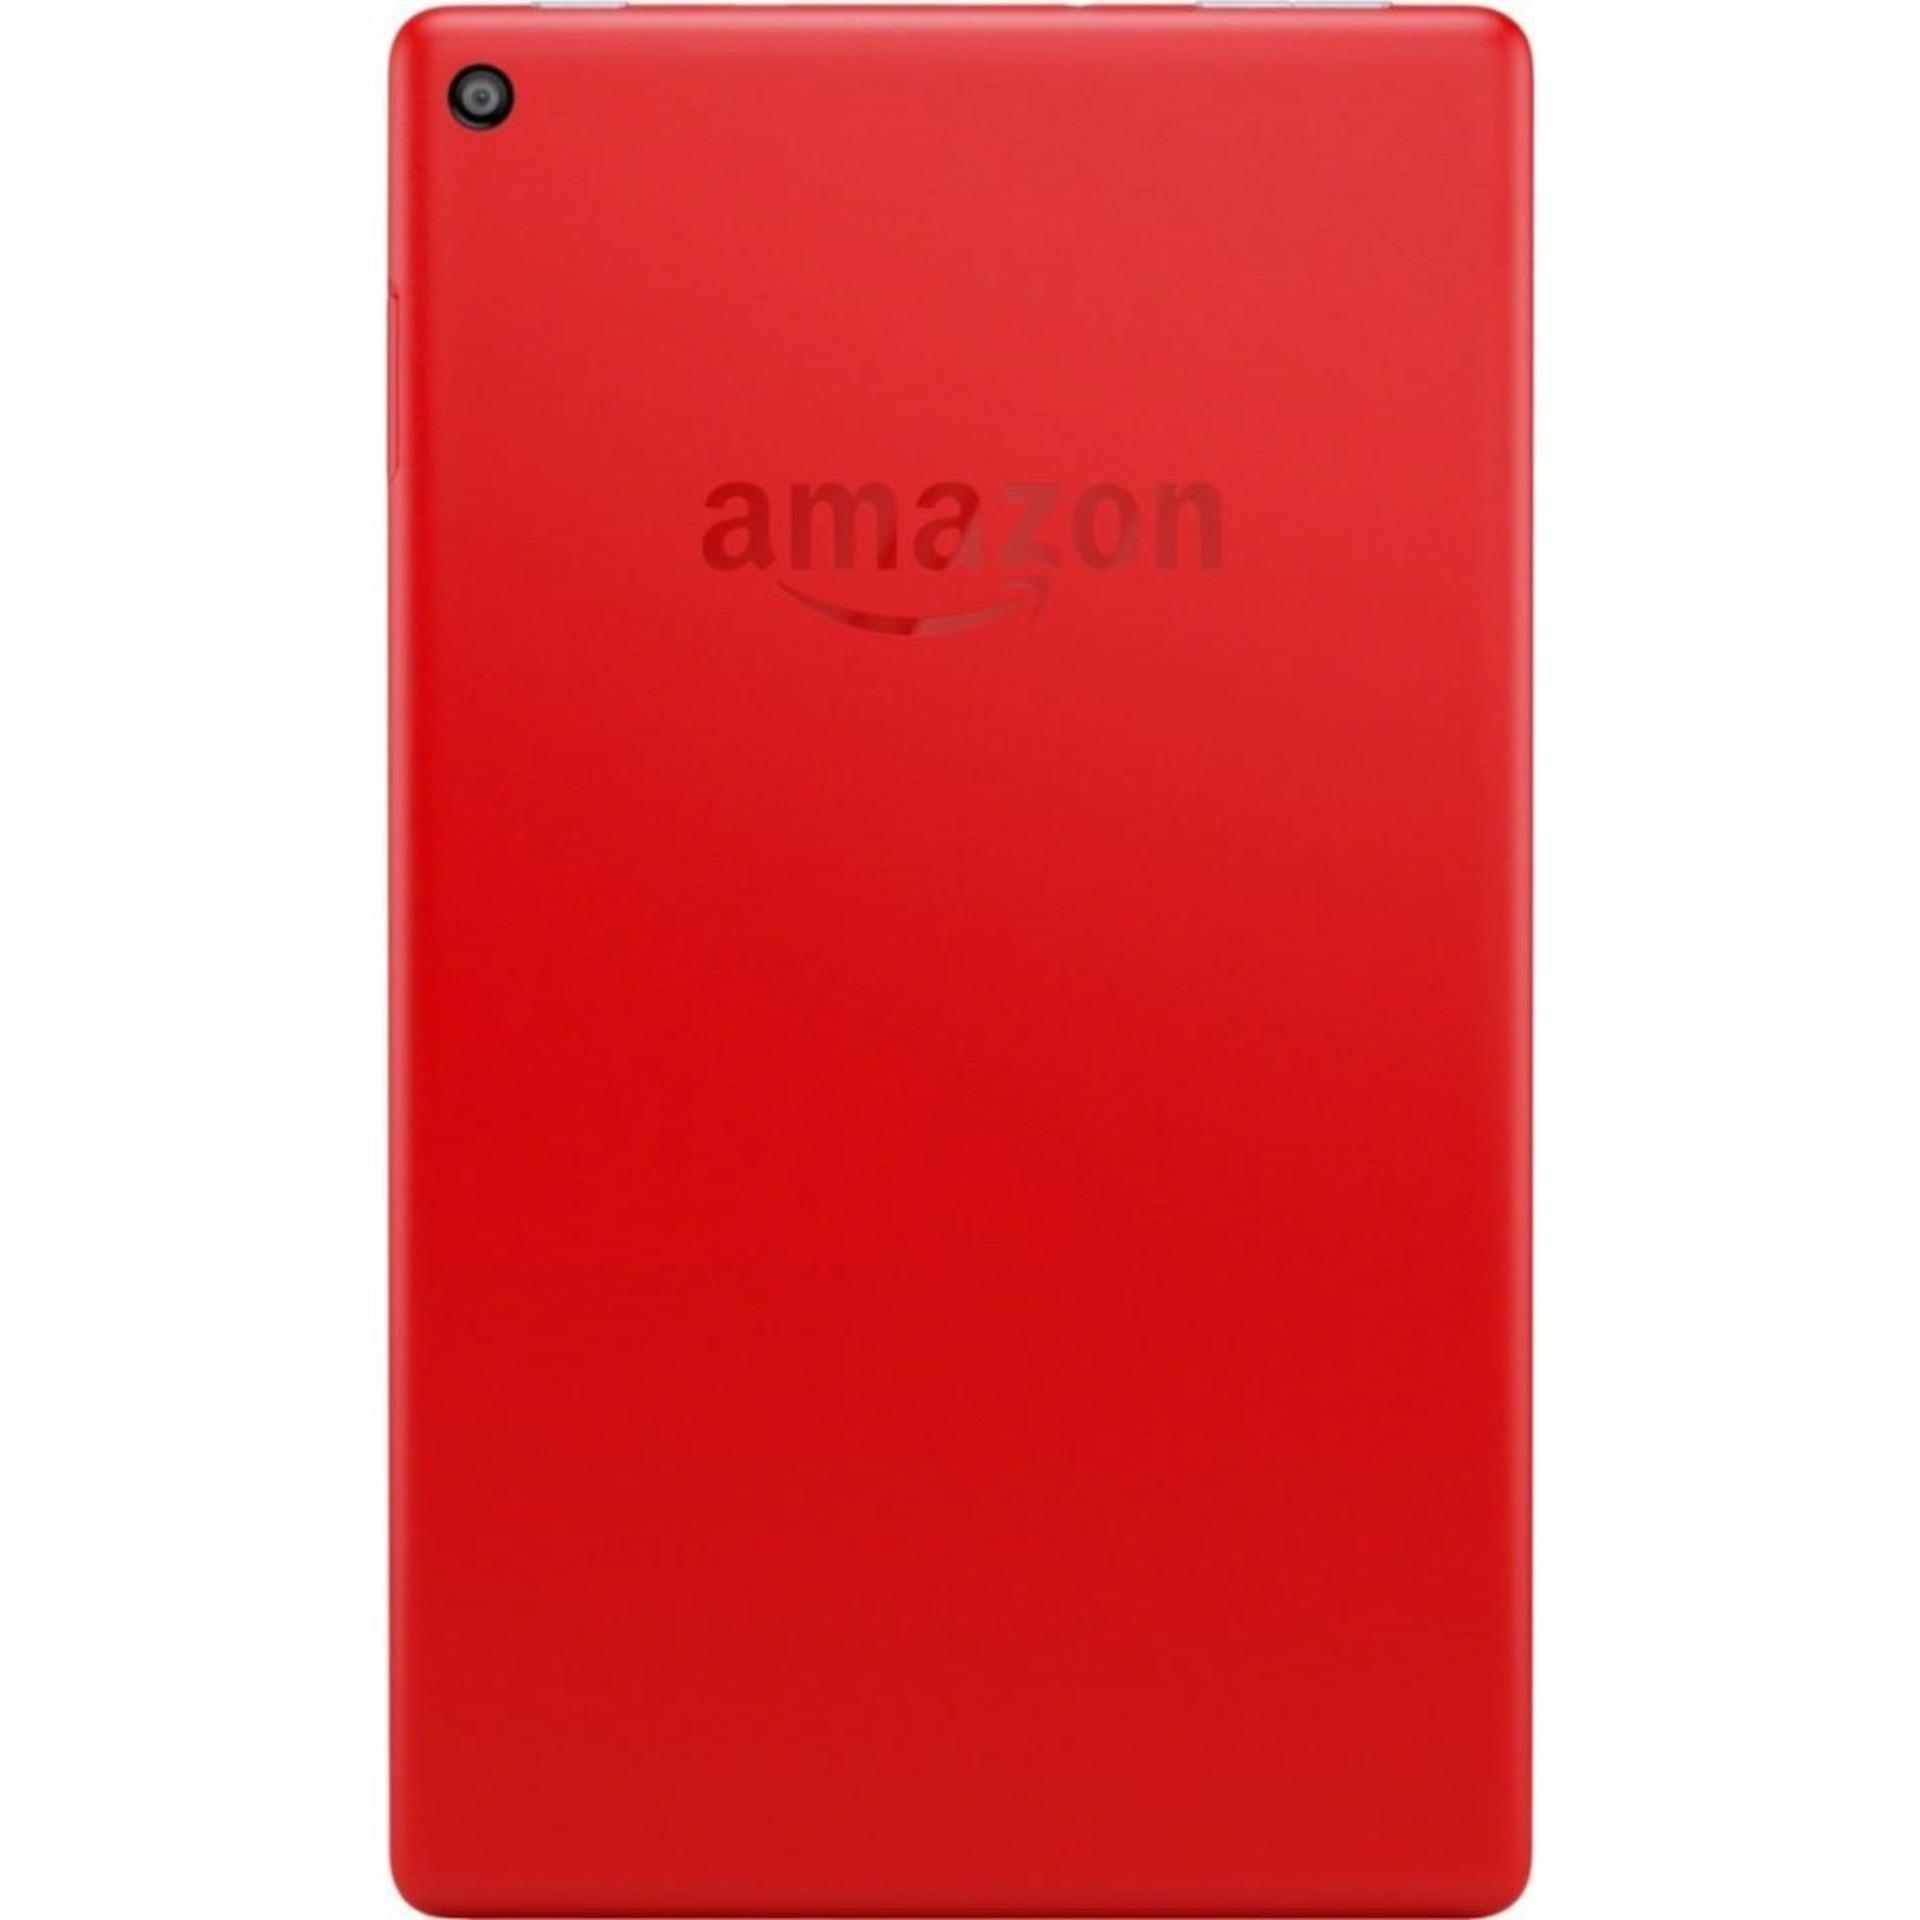 Amazon All-New Fire HD 8 Tablet with Alexa, 8